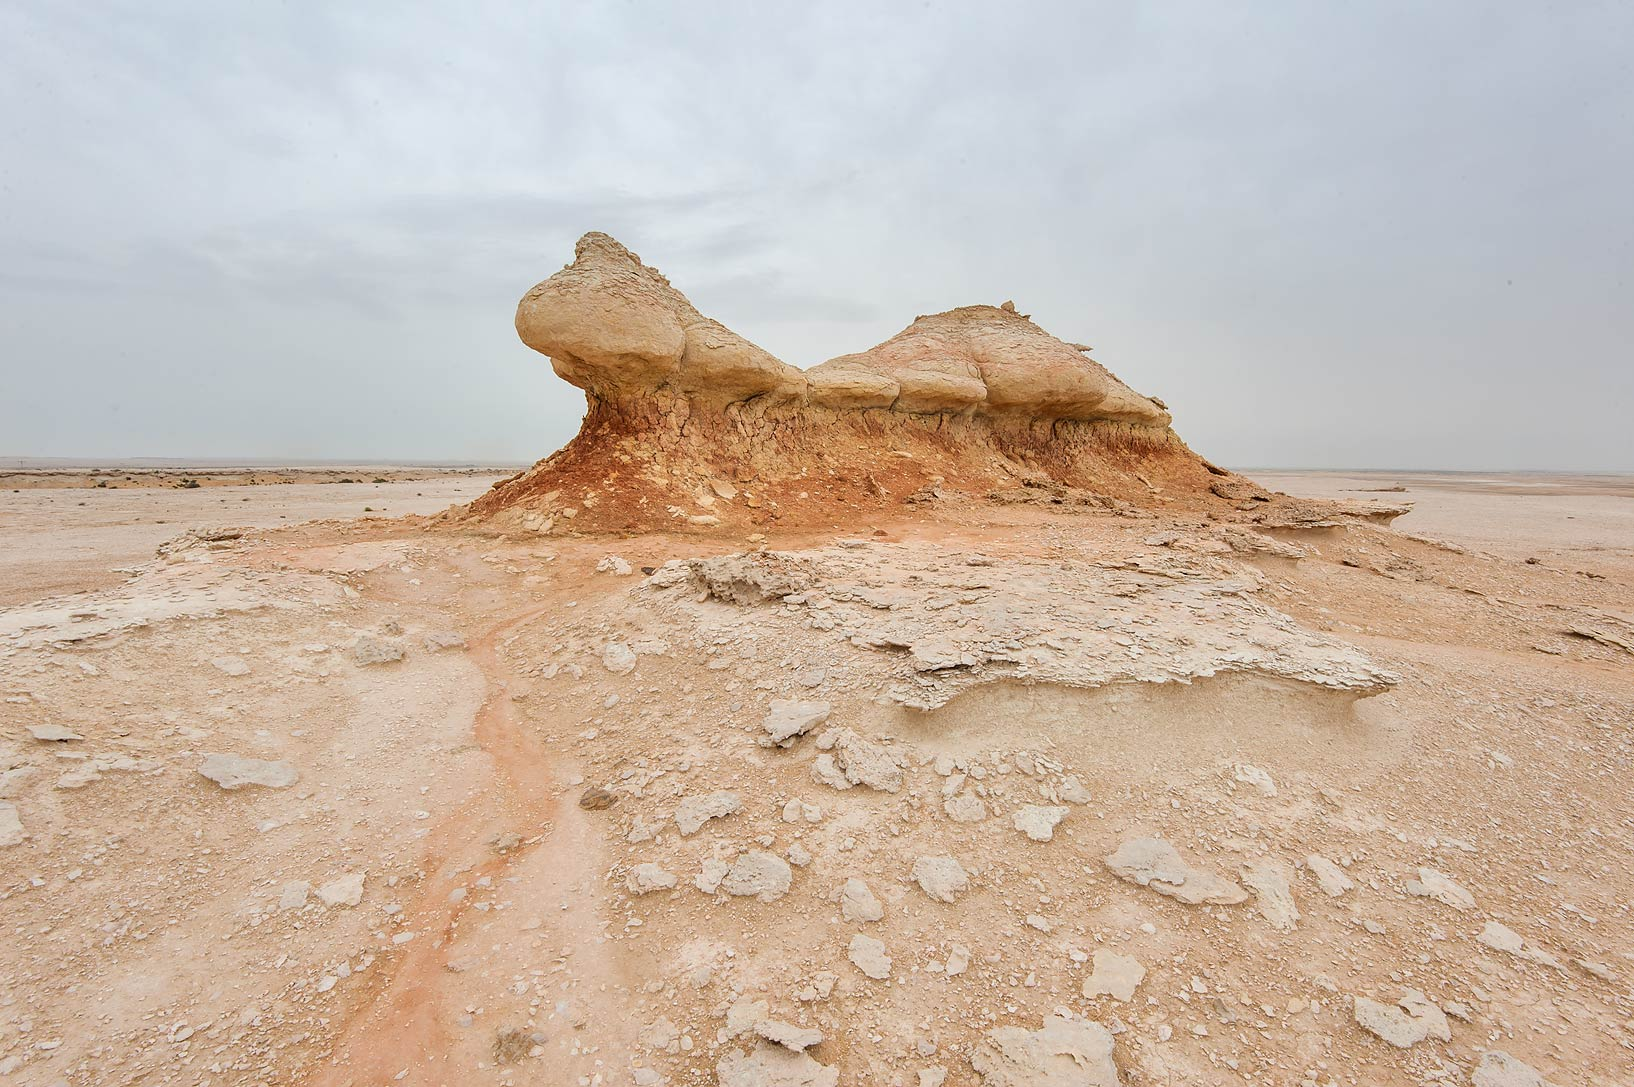 Limestone figure on a plateau of a tabletop...Reserve near Abu Samra. Southern Qatar